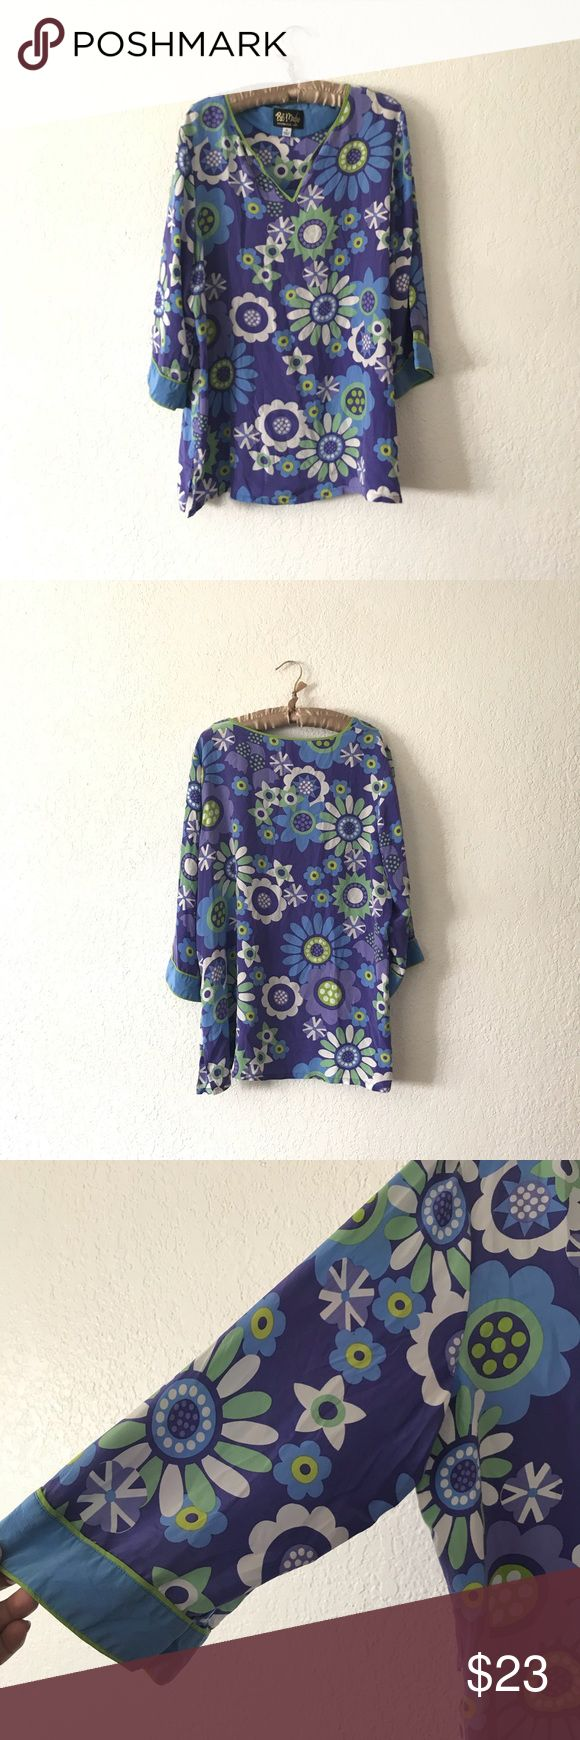 "Bob Mackie wearable art silk blouse XL Very pretty silk floral top. Sleeves aren't all the way long, 100% silk. Good condition  Bust across 24"" Length 30"" Bob Mackie Tops Blouses"